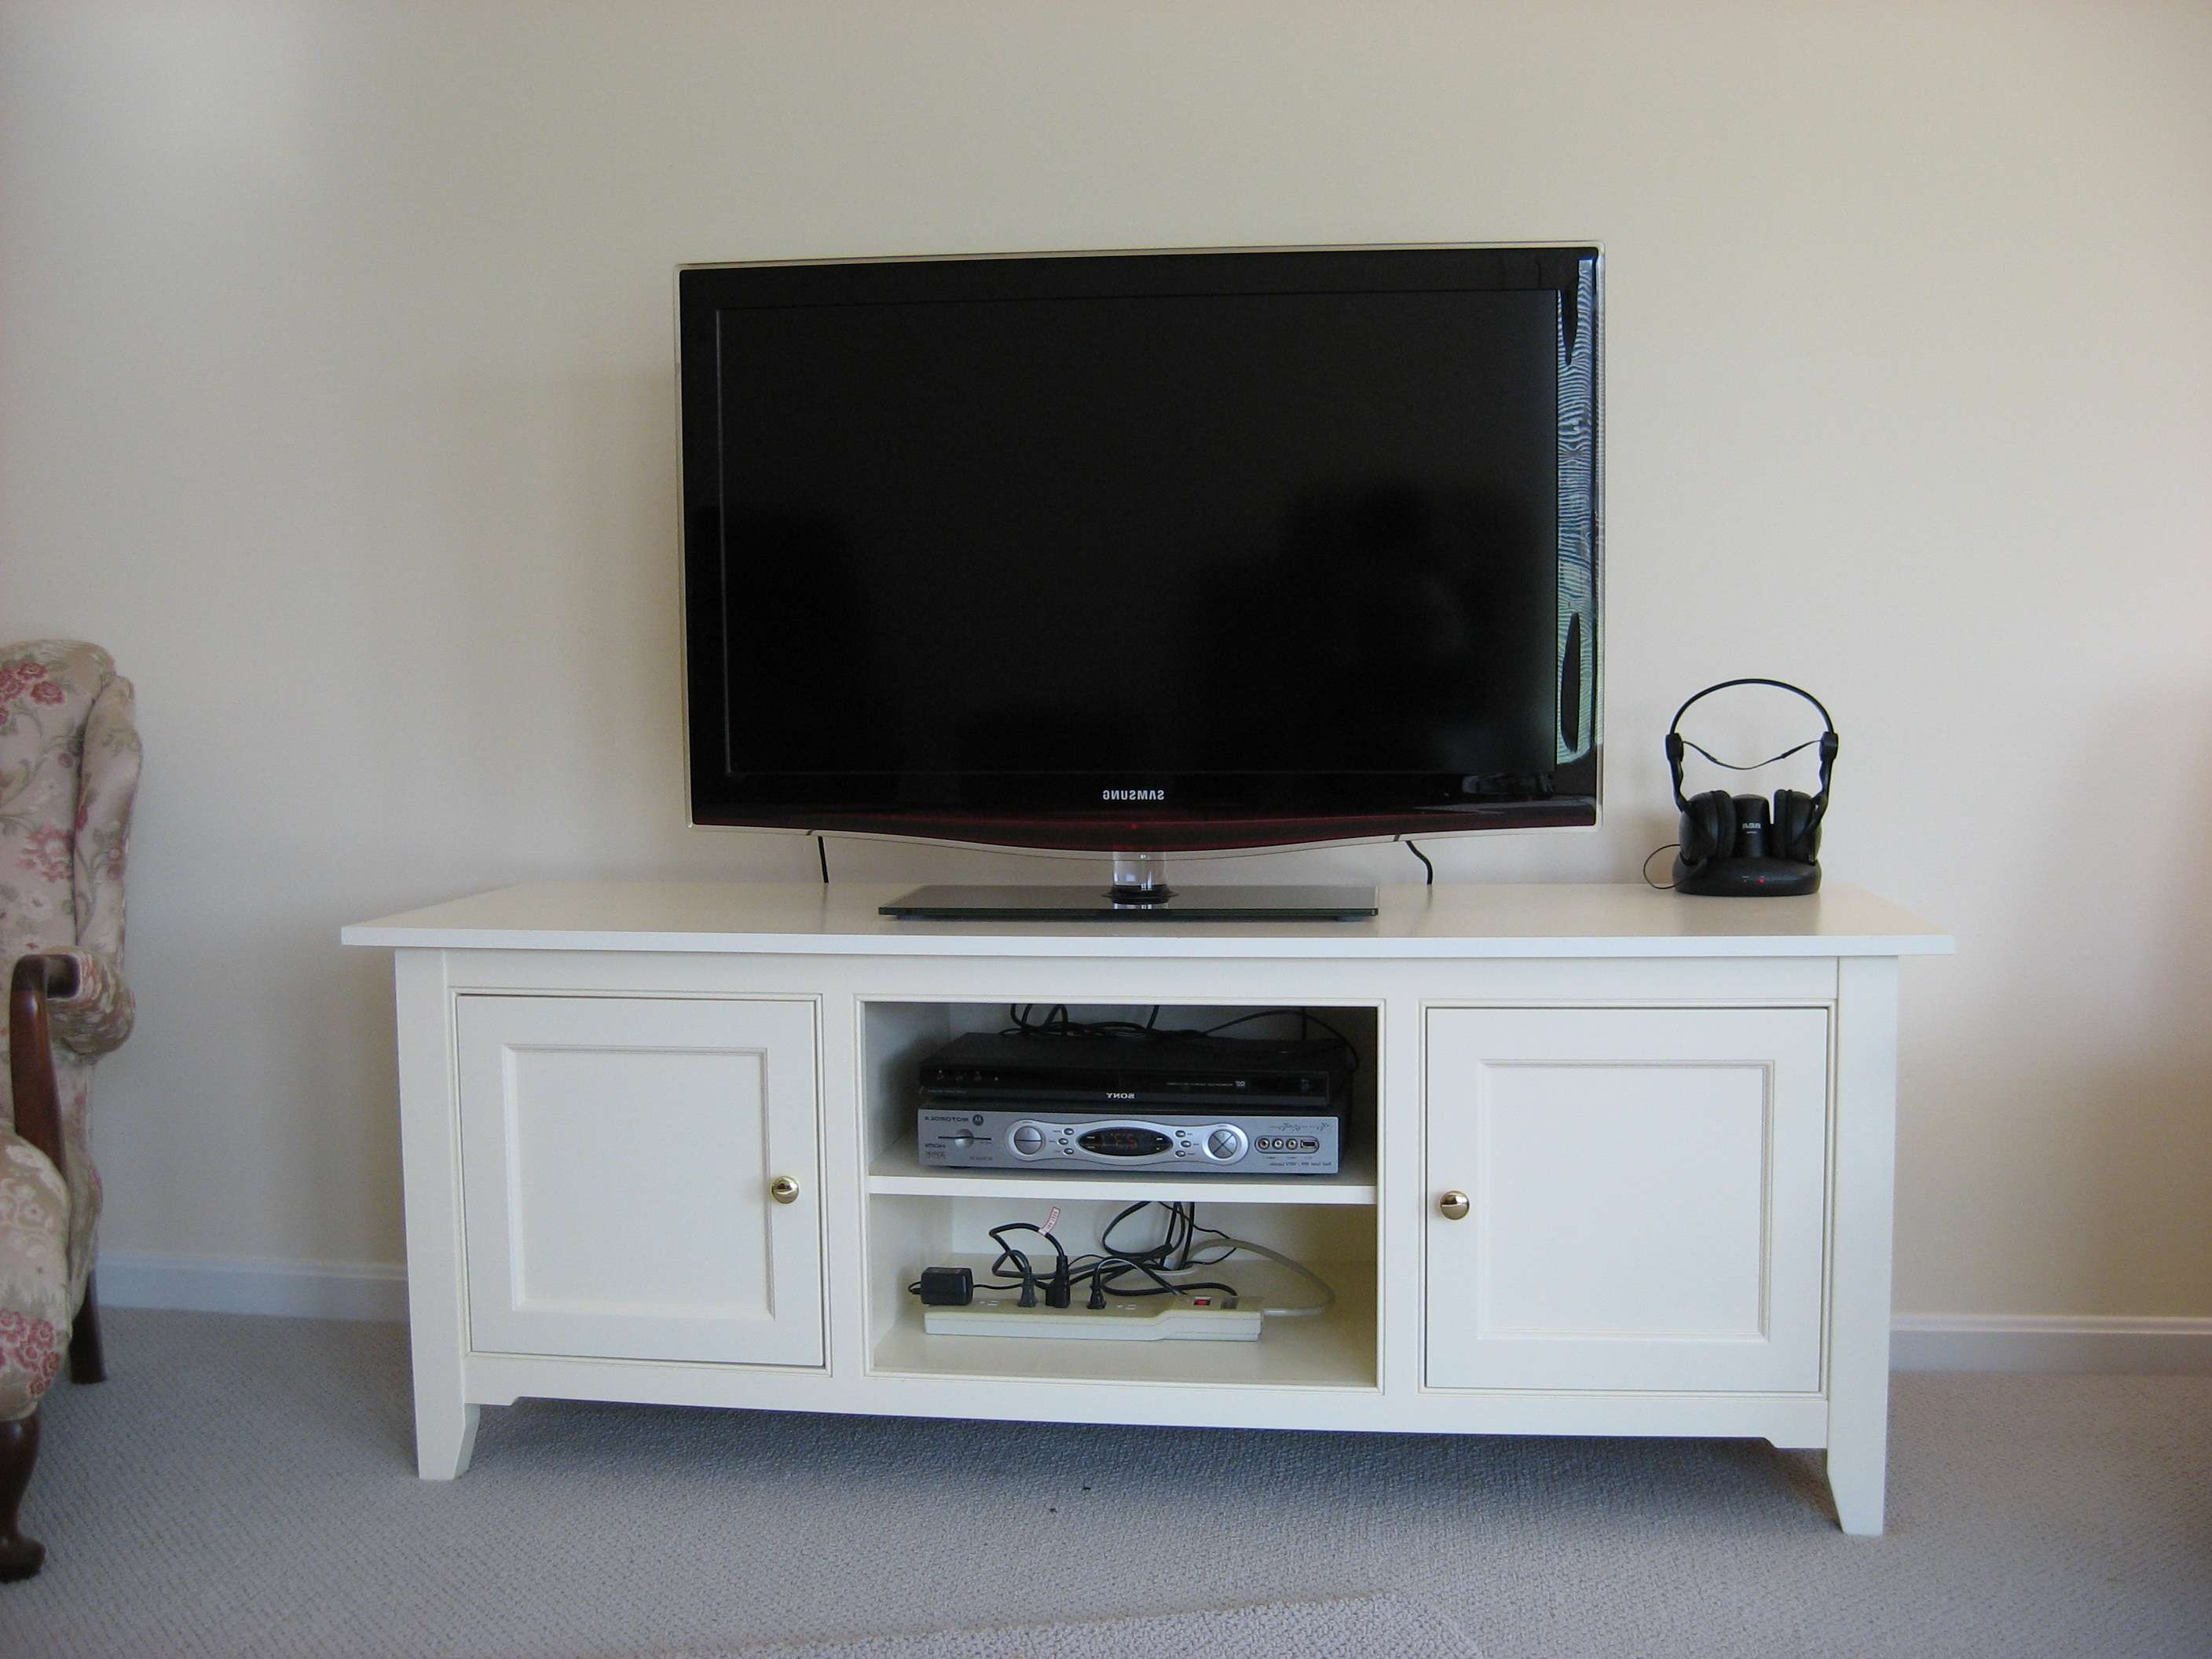 Furniture Black Wooden Tv Stand With Fireplace Having Storage With Regard To White Wood Tv Stands (View 5 of 15)